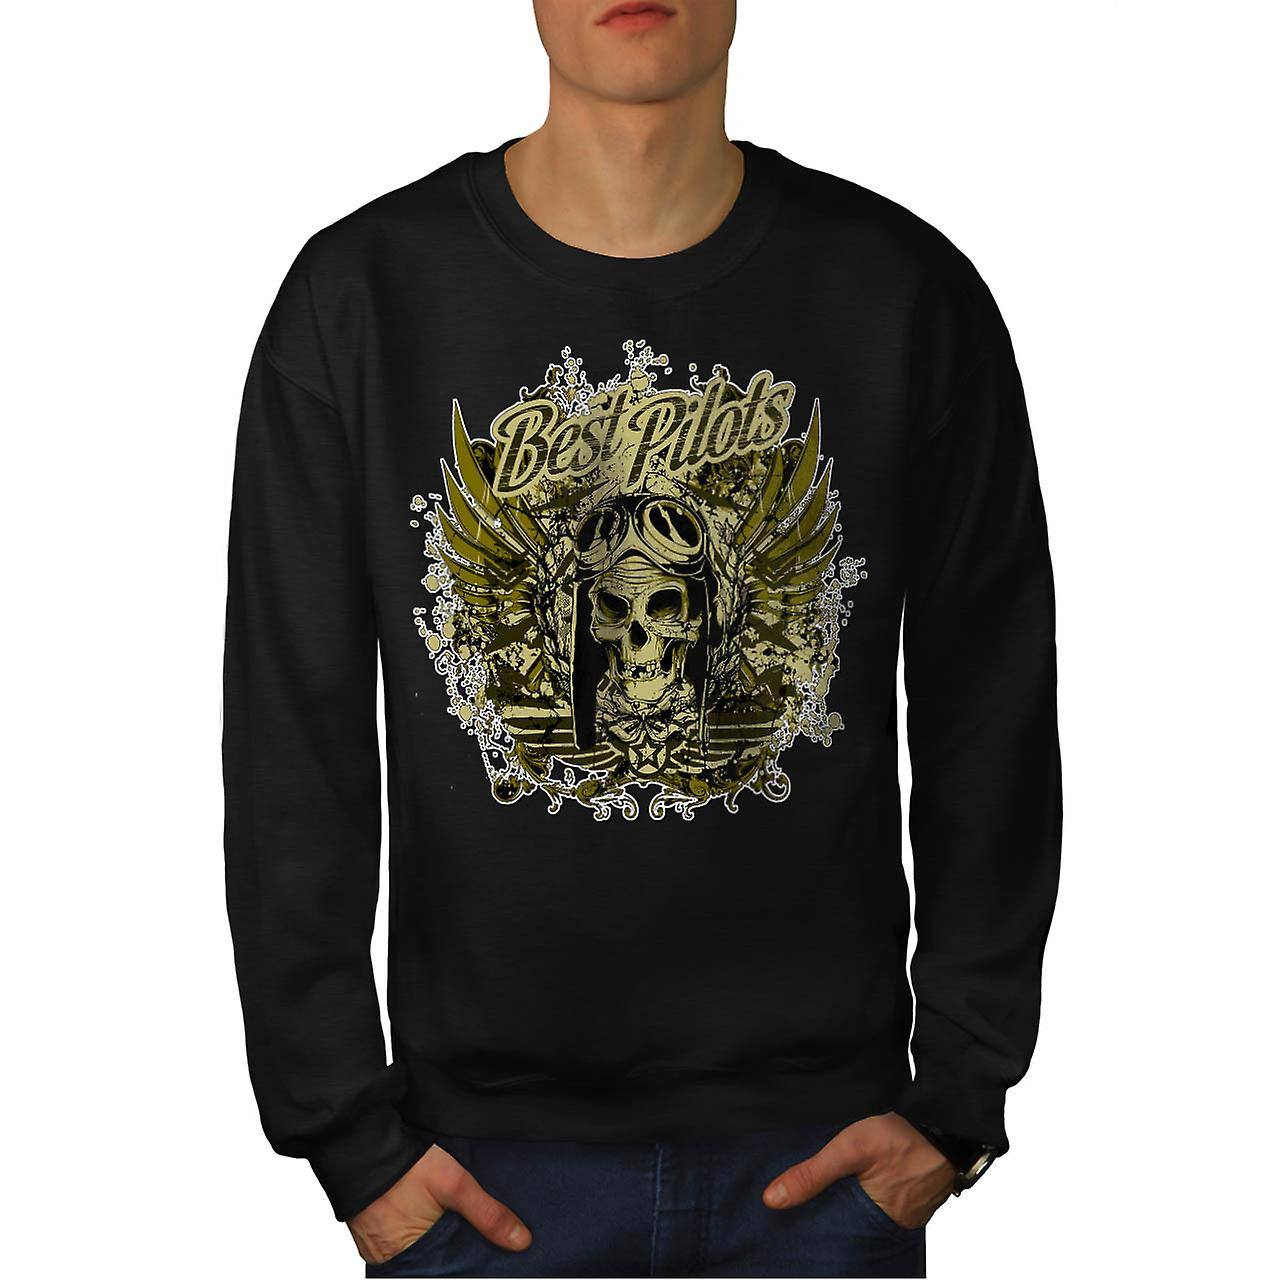 Best Pilot Fly Plane Flight Hell Men Black Sweatshirt | Wellcoda